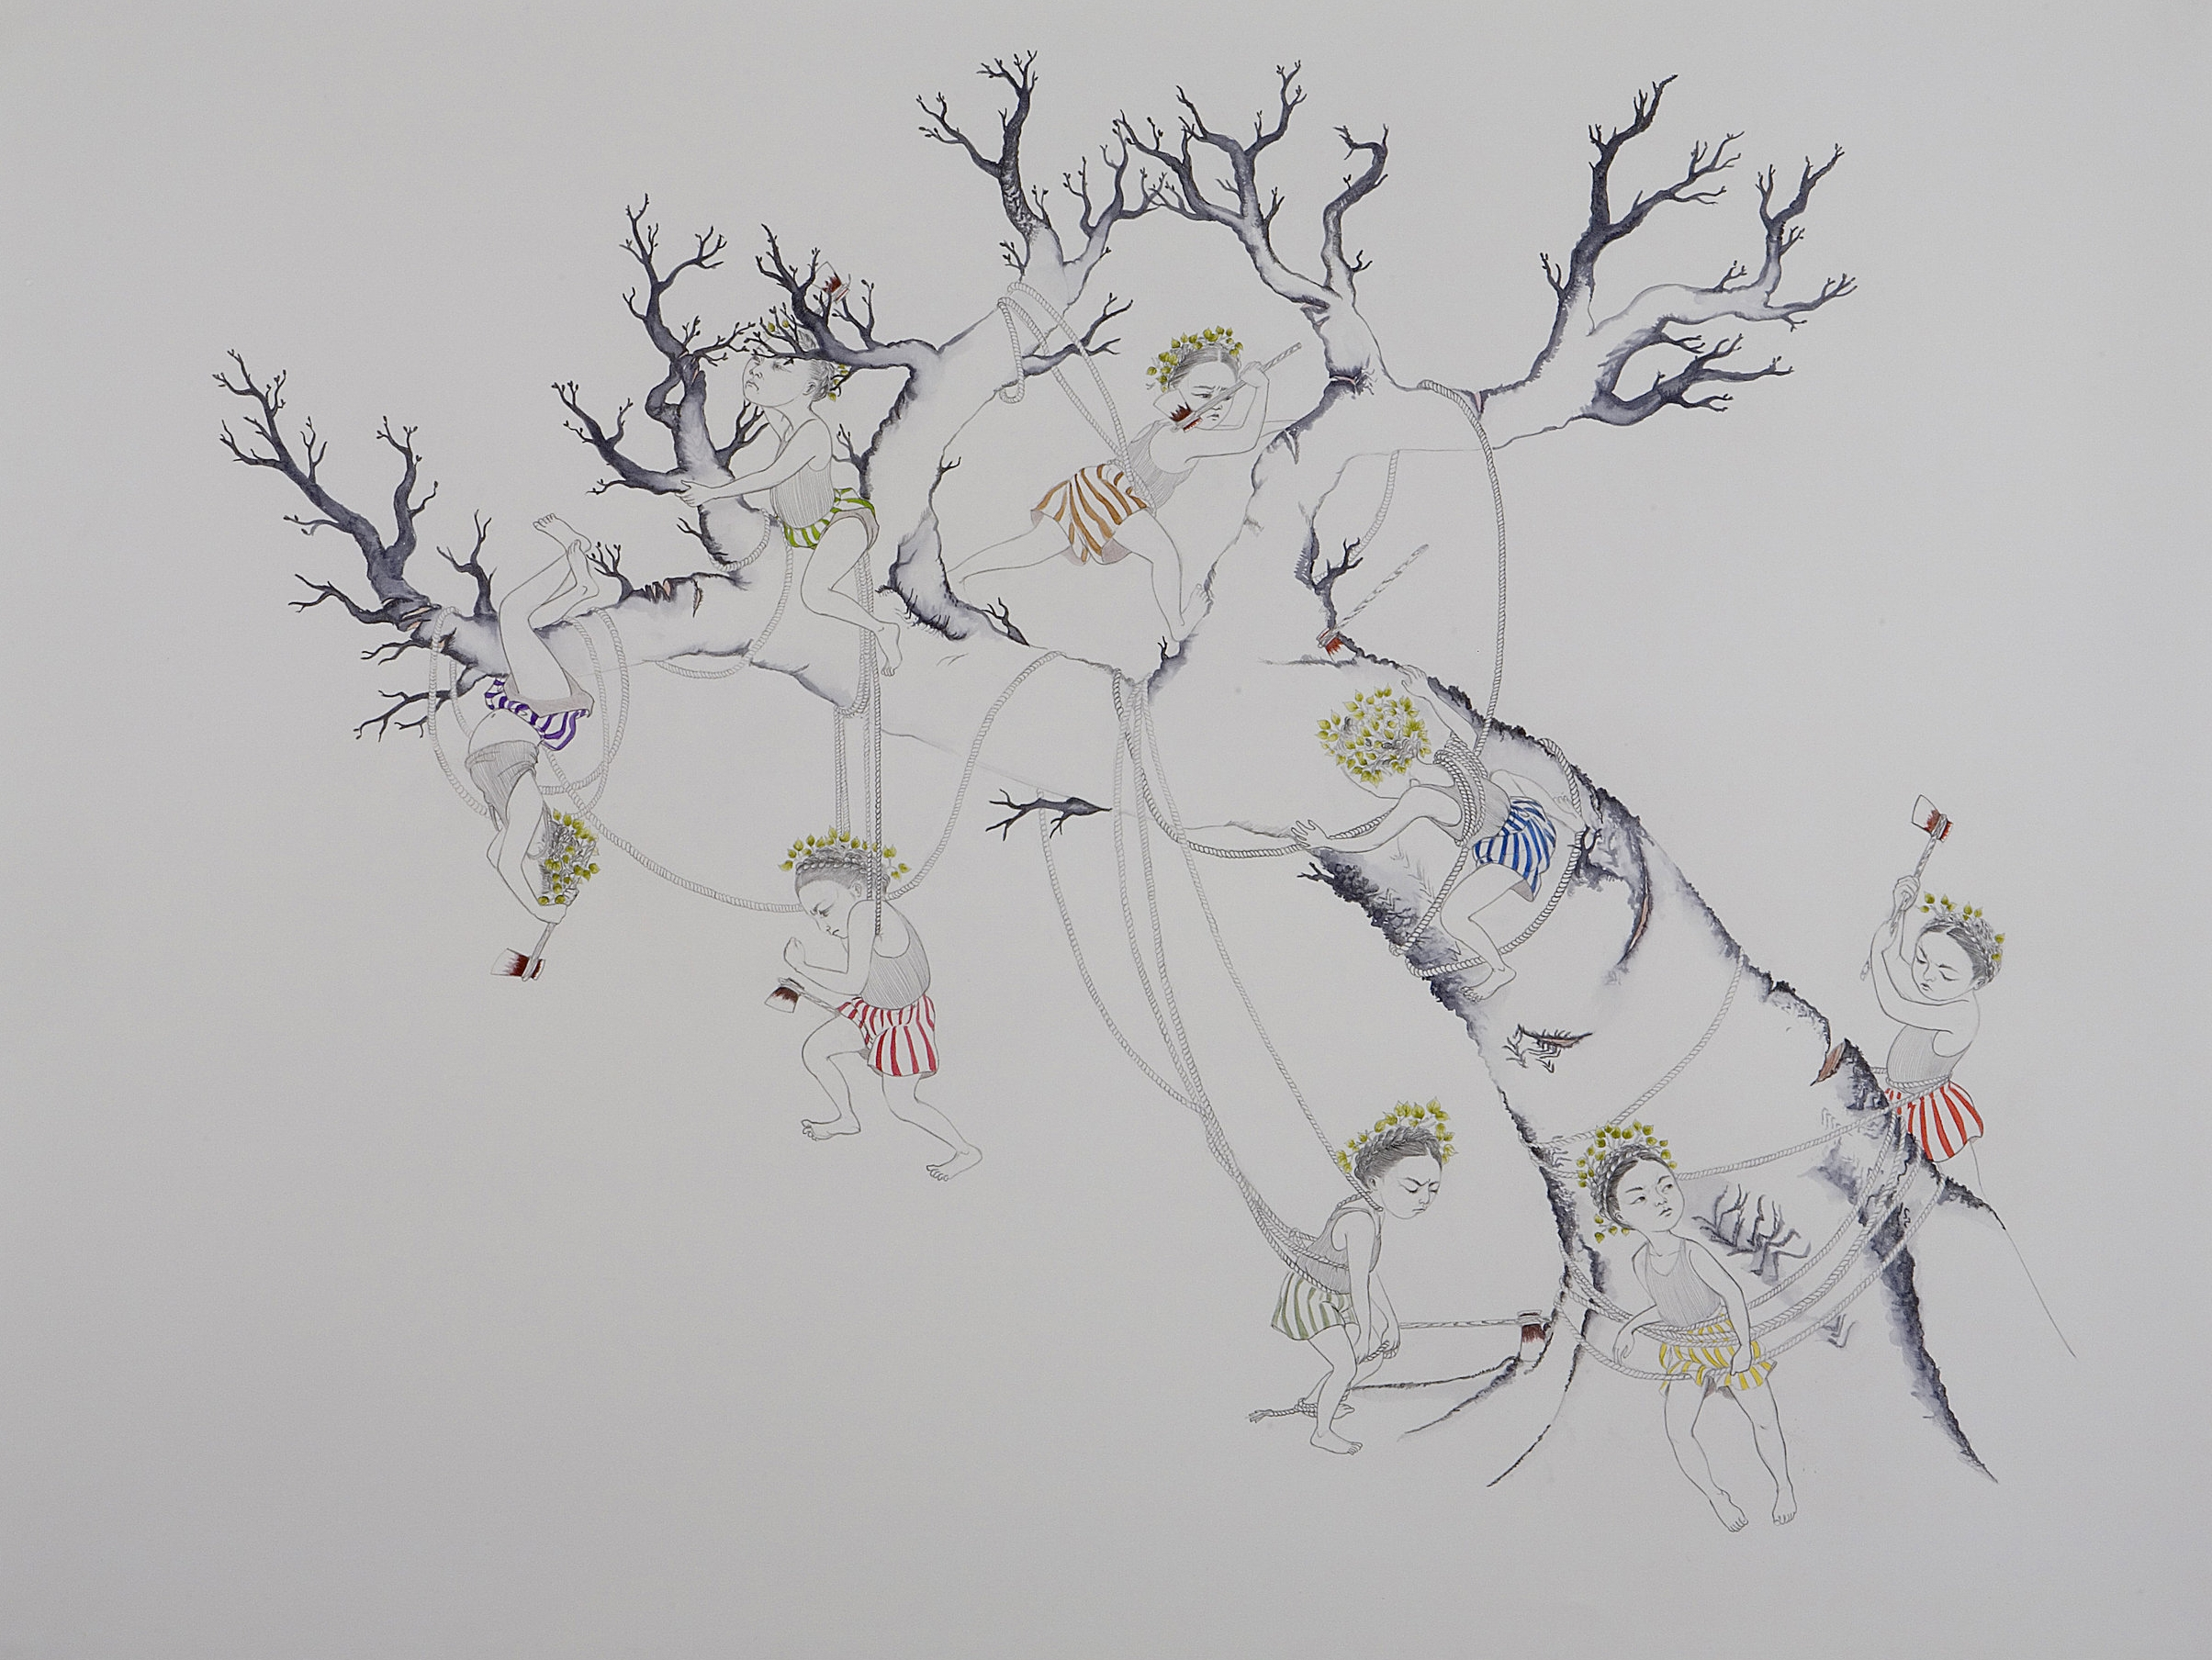 Taking Down A Giant , 2007 Graphite, watercolor, ink on paper 38 X 50 inches Private collection